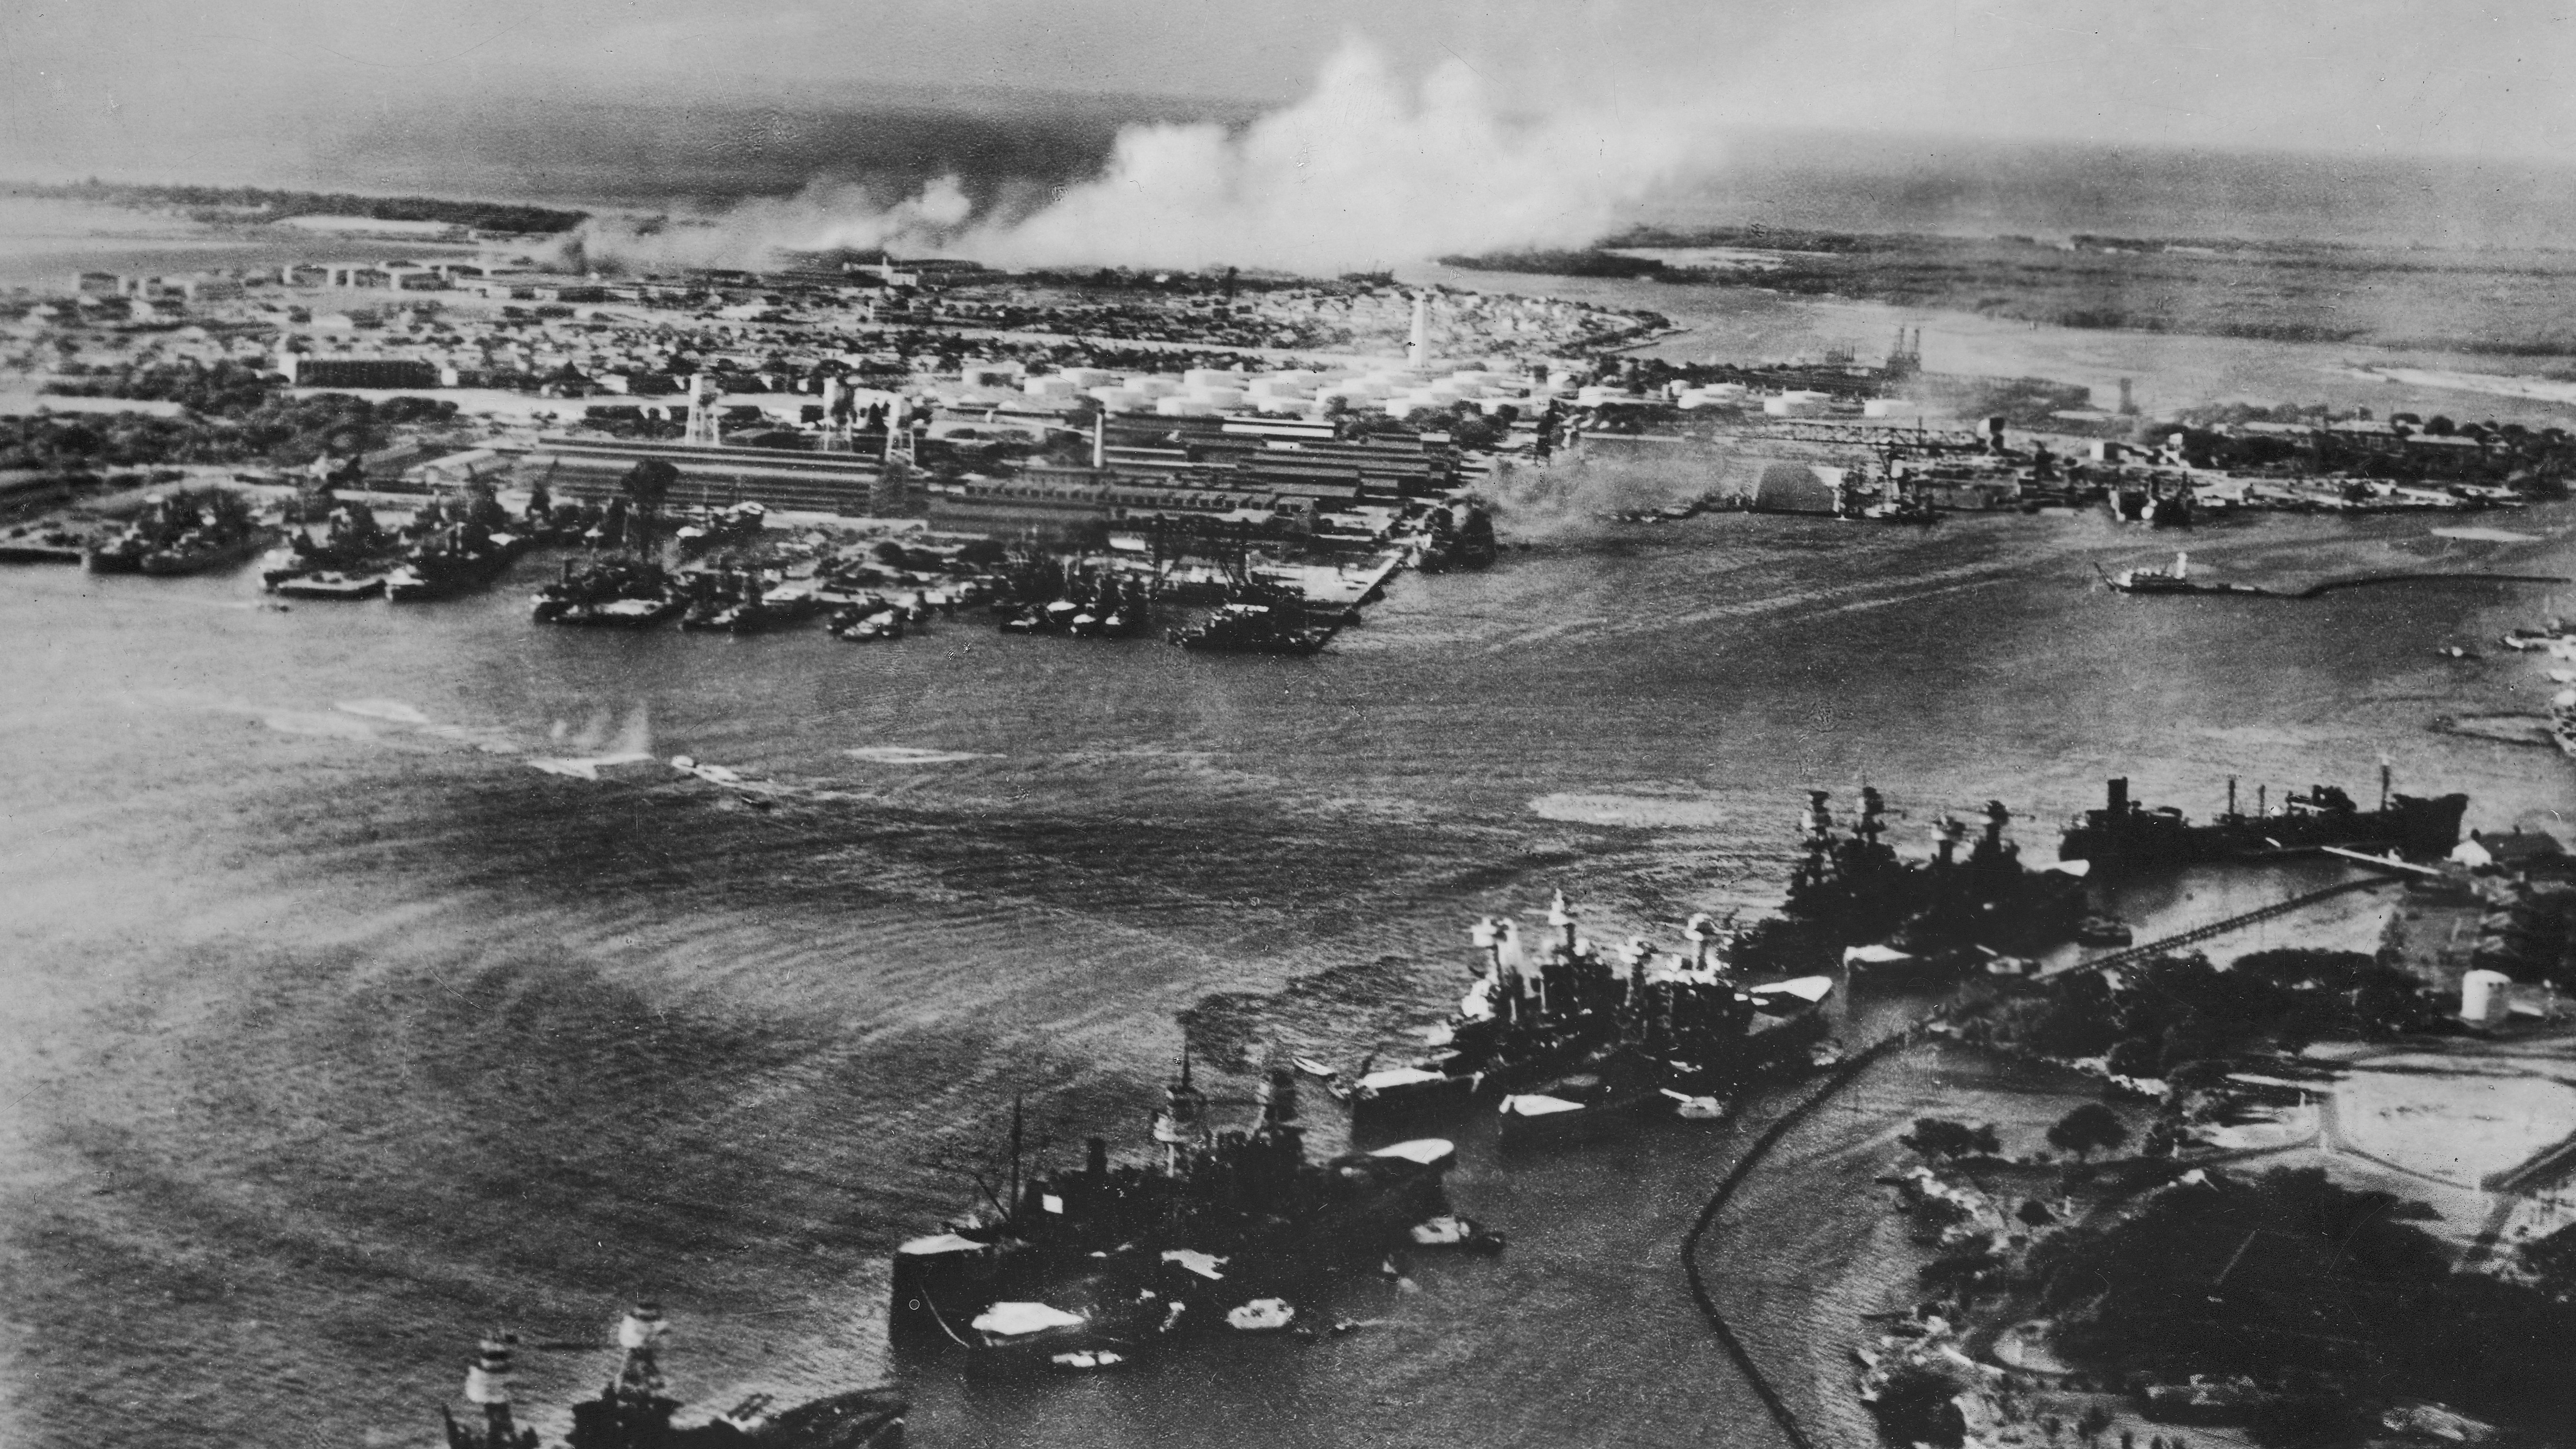 a history of the attack on pearl harbor in 1941 December 7, 1941 was a date which will live in infamy, according to franklin delano roosevelt the surprise attack on pearl harbor by the japanese led the united.